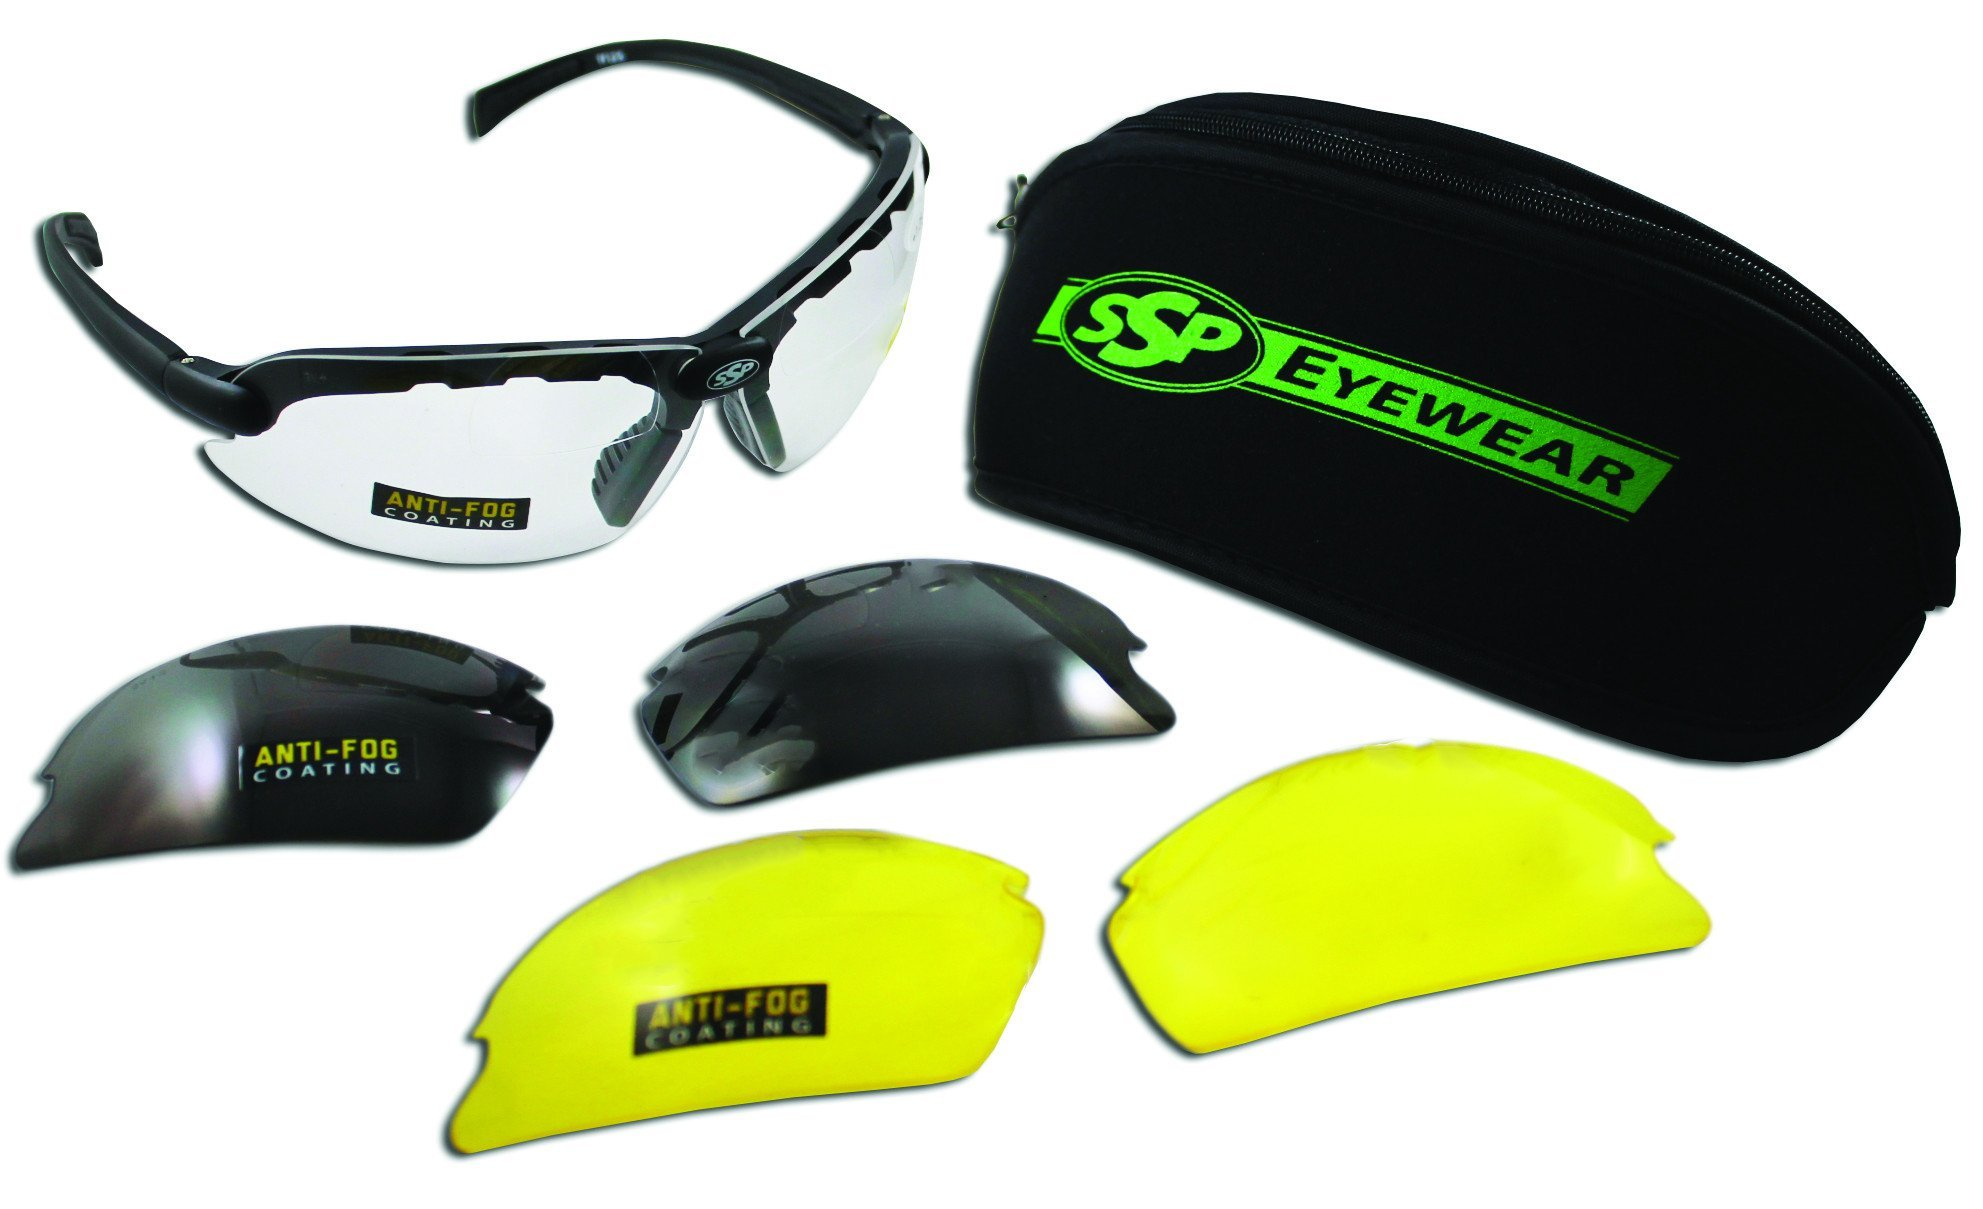 SSP Eyewear Shatterproof Safety Glasses Kit with Assorted Color Anti-Fog Lenses, CHELAN AST KIT by SSP Eyewear (Image #1)